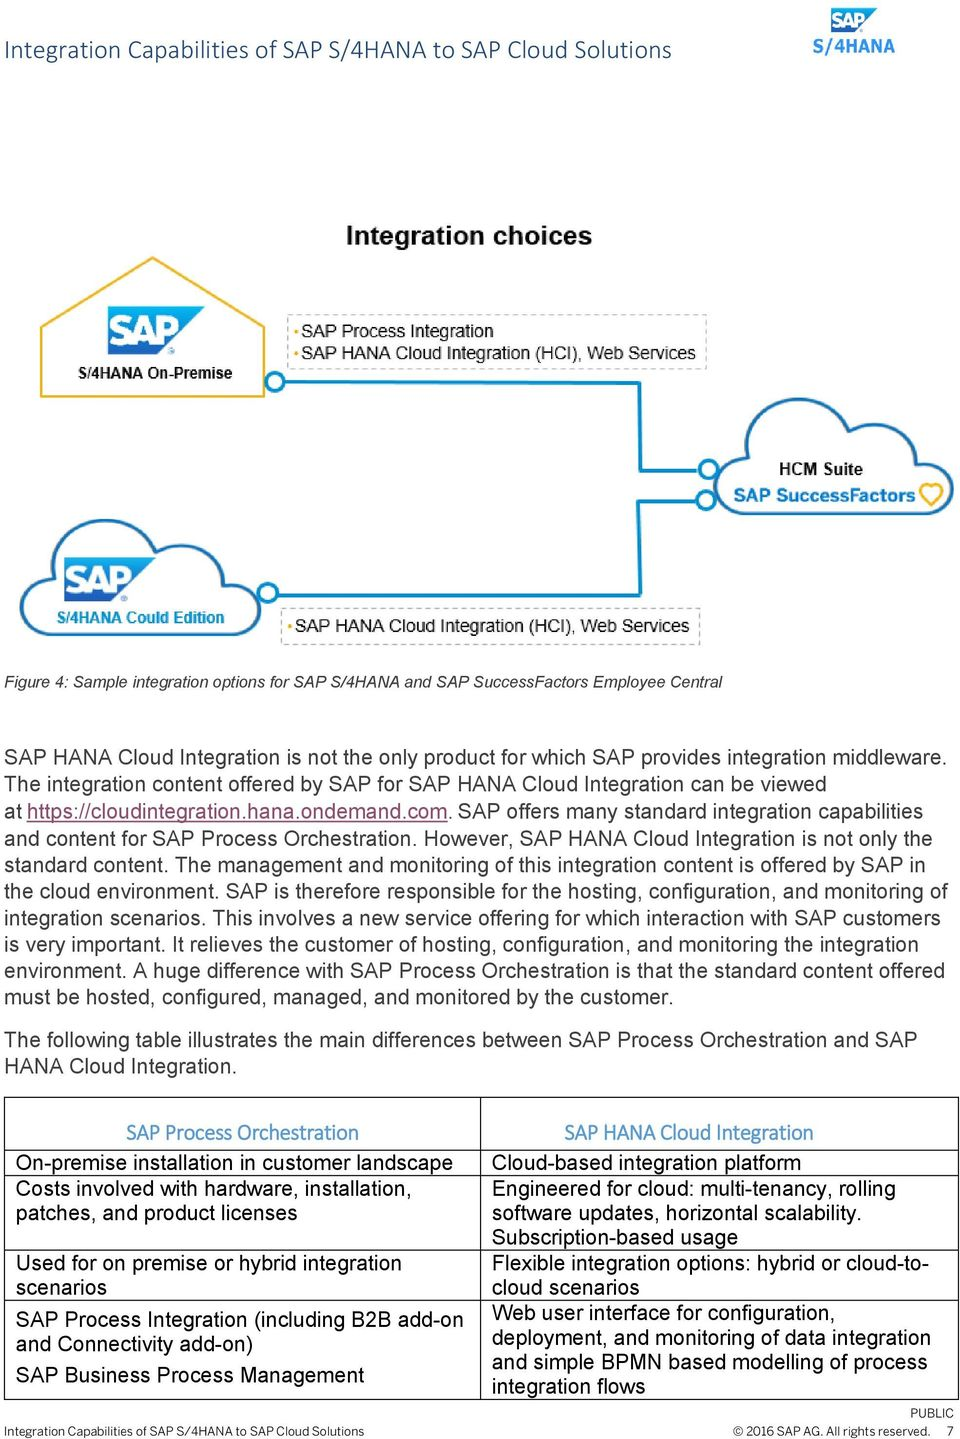 SAP offers many standard integration capabilities and content for SAP Process Orchestration. However, SAP HANA Cloud Integration is not only the standard content.